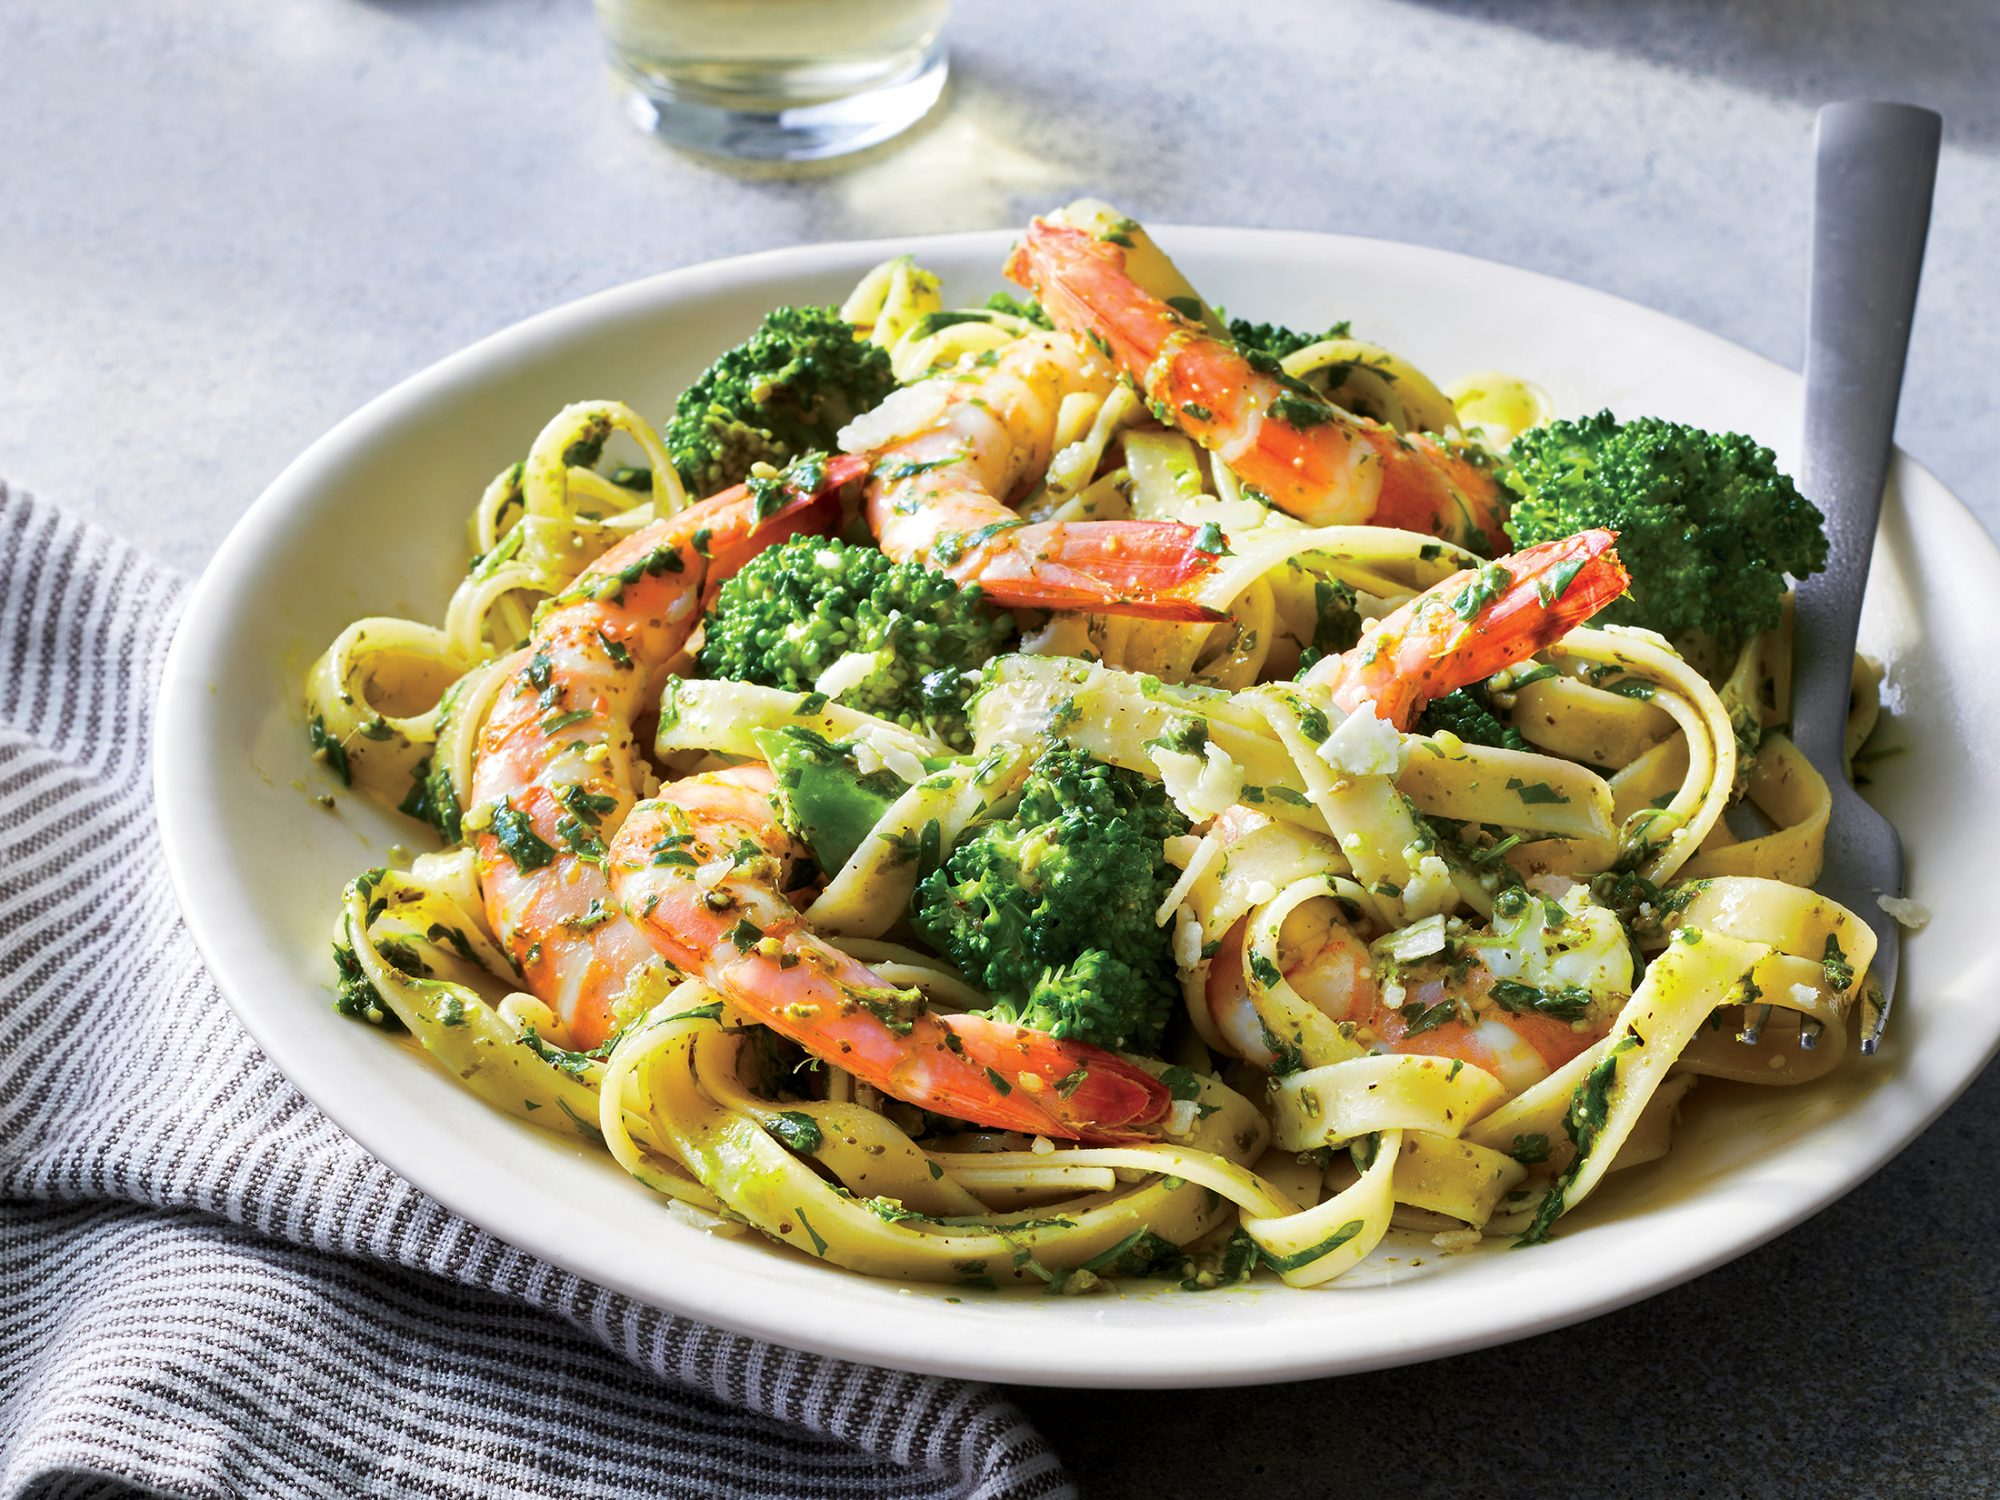 Pesto Shrimp and Broccoli Fettuccine